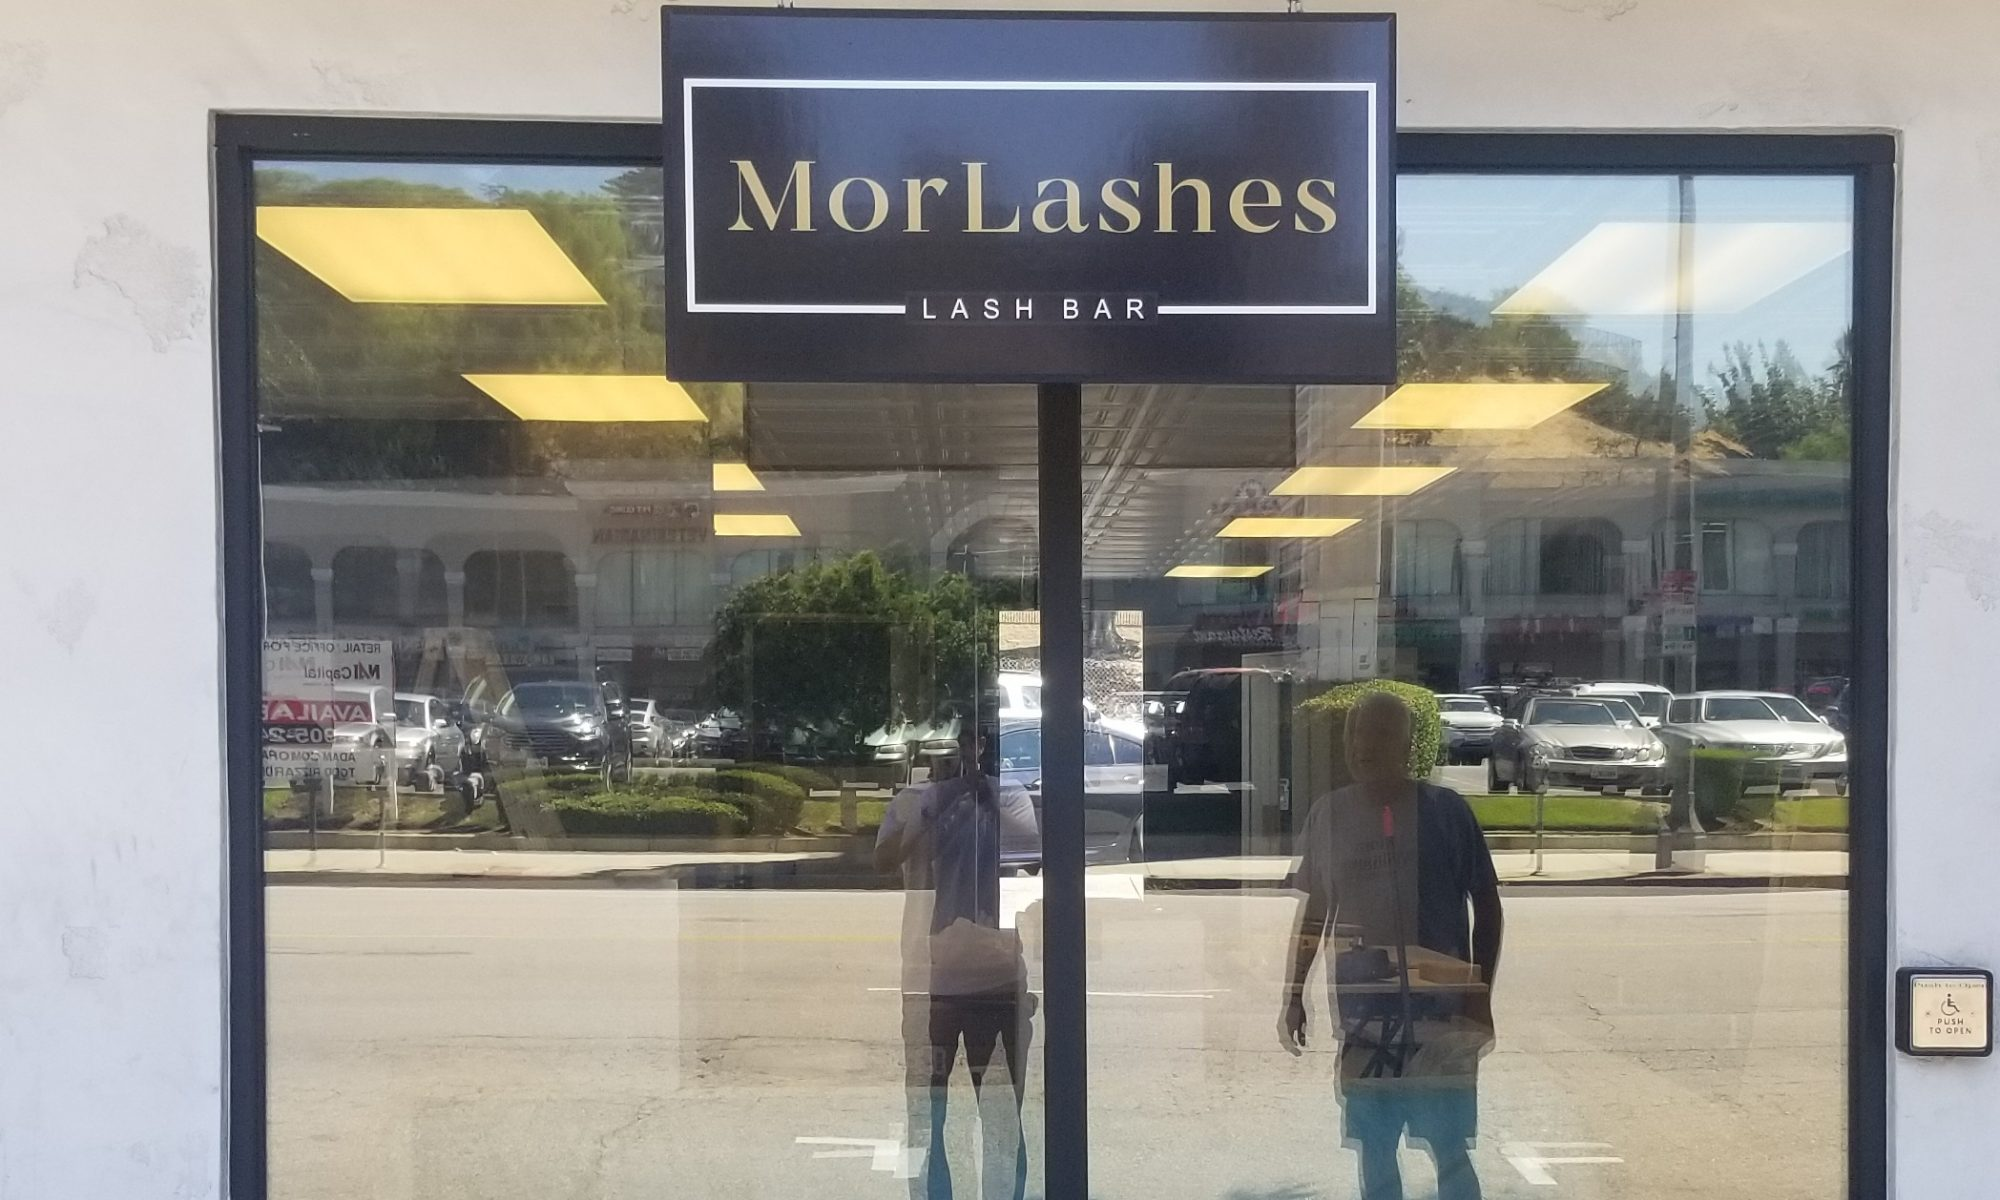 sign company near me, sign maker, outdoor business sign, storefront sign, commercial sign, custom business sign, salon sign, parking lot sign, parking sign, sign company in Tarzana, sign company in San Fernando Valley, custom business signs,